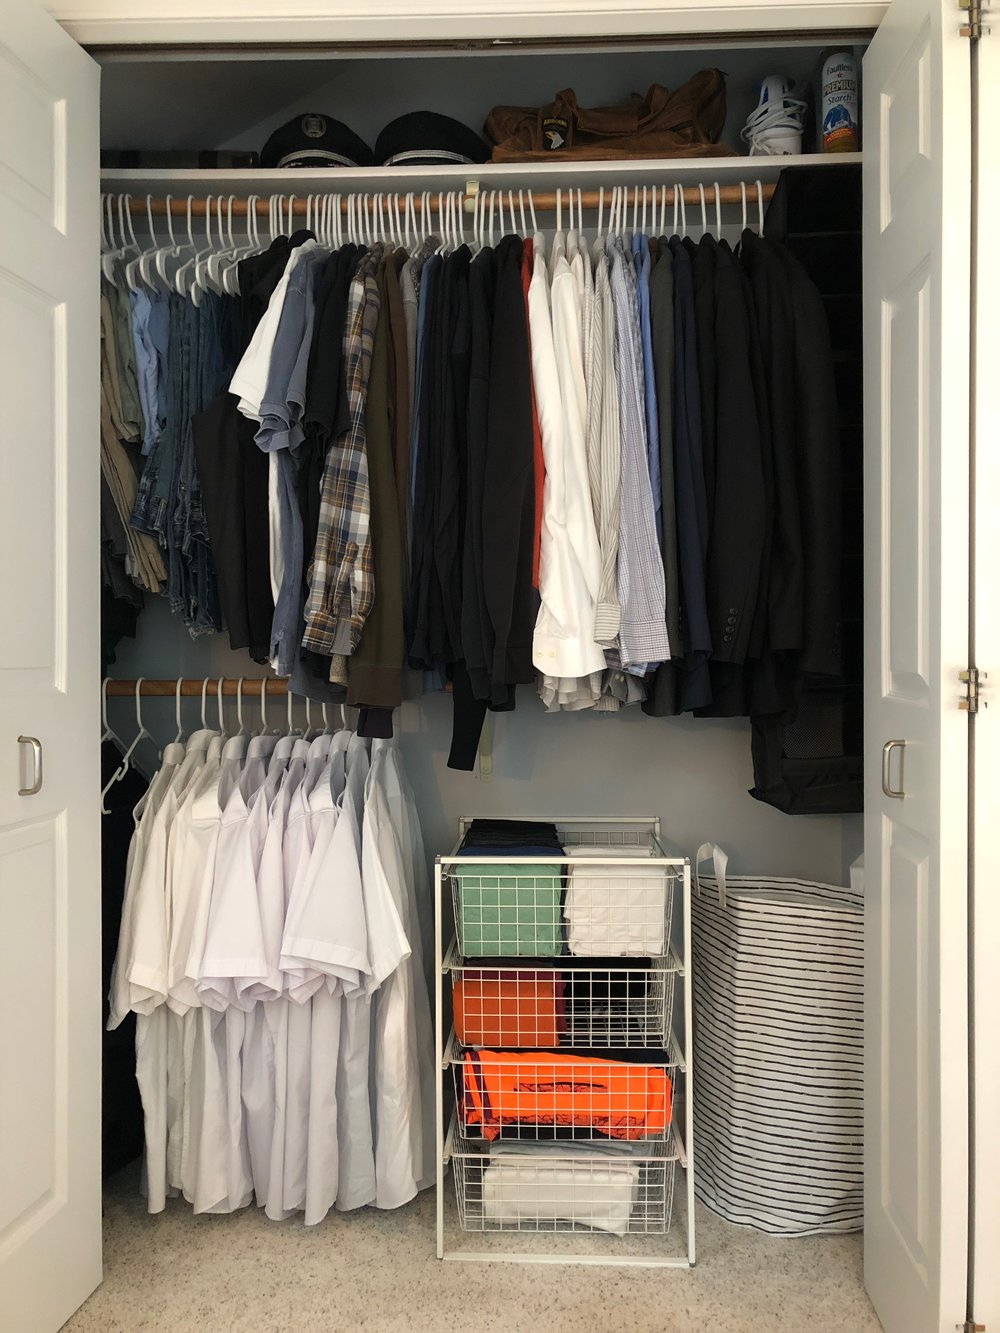 AFTER - With everything in one place, it is now easy for him to pack for his trips.